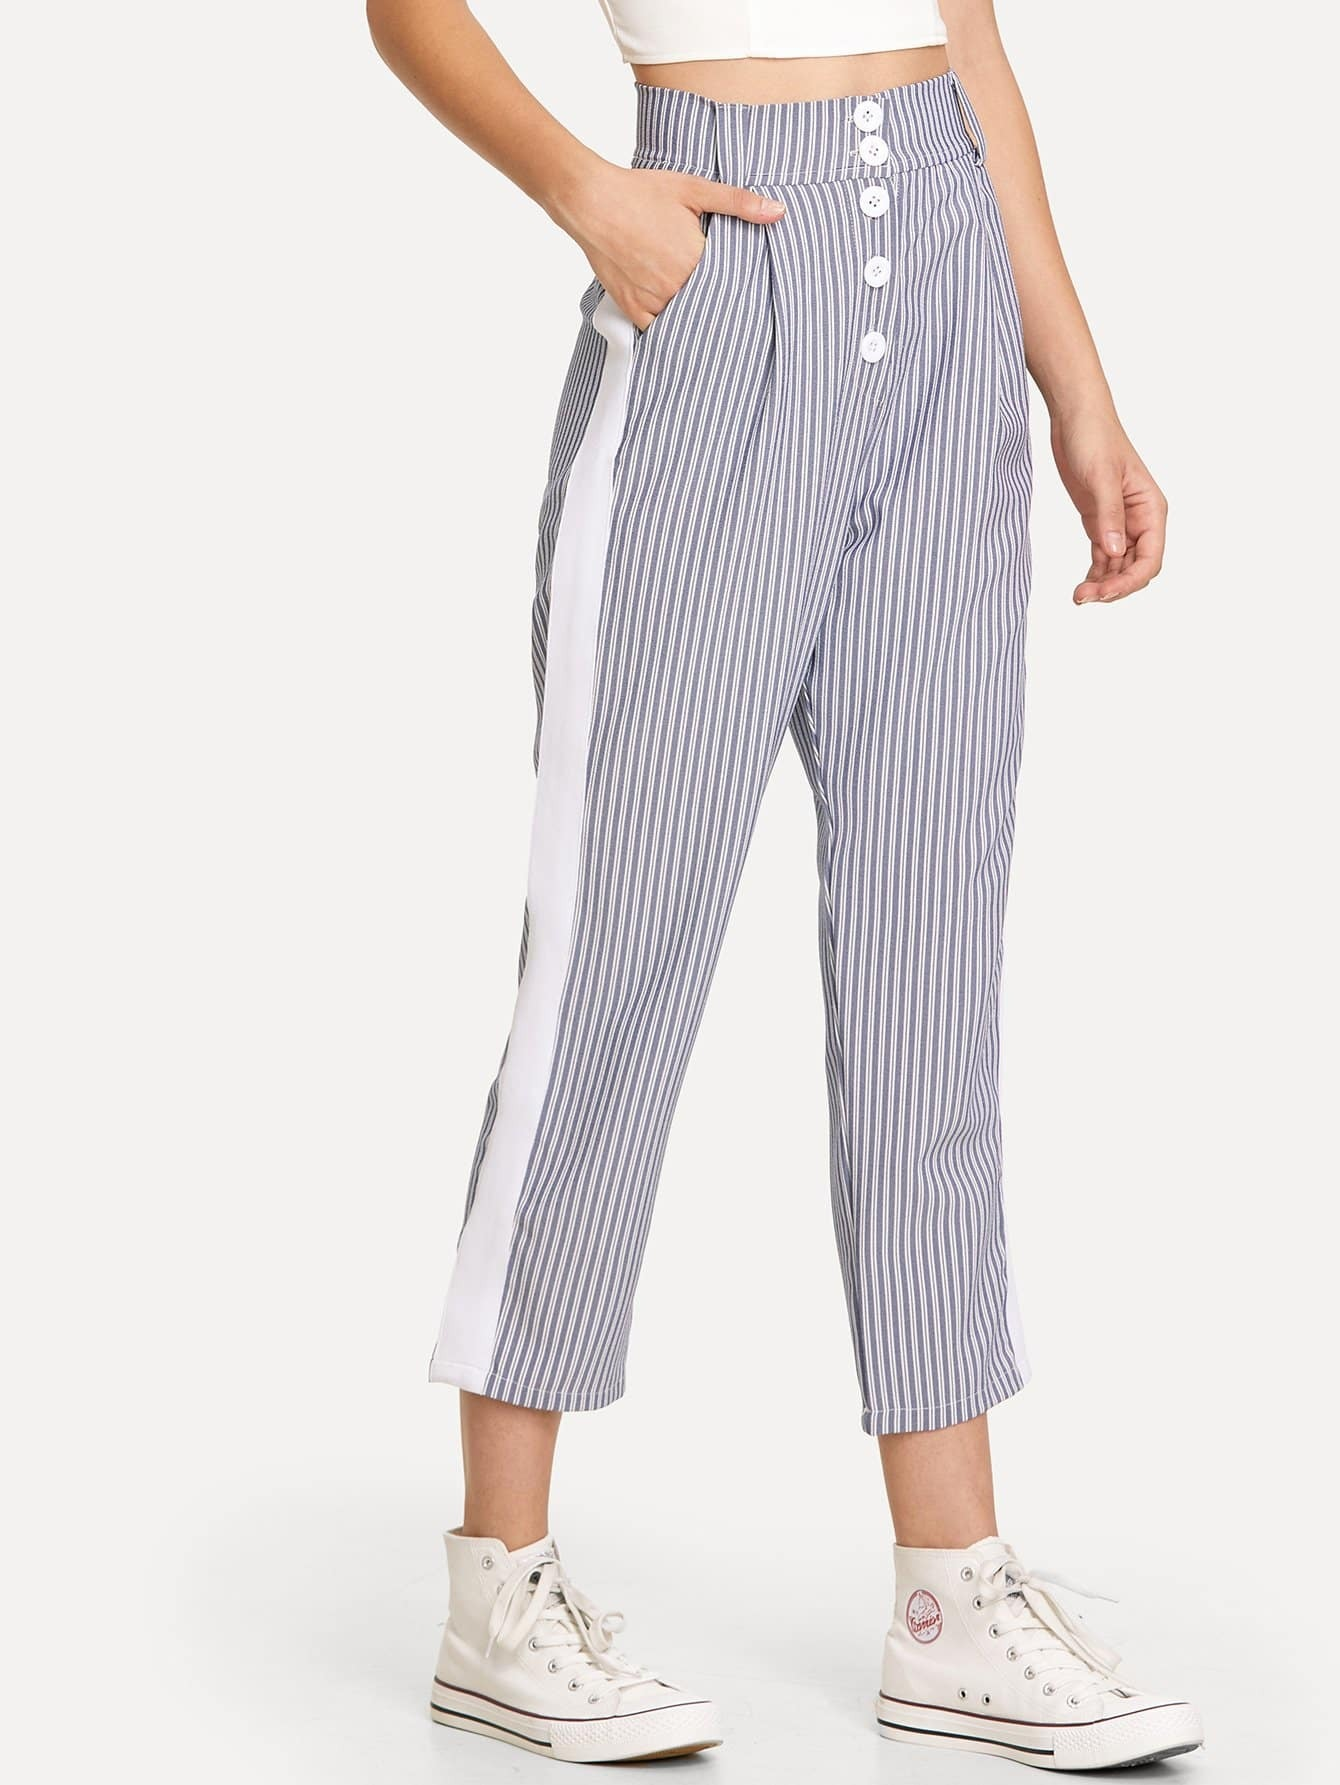 Contrast Panel Striped Pants kids contrast striped star print pants